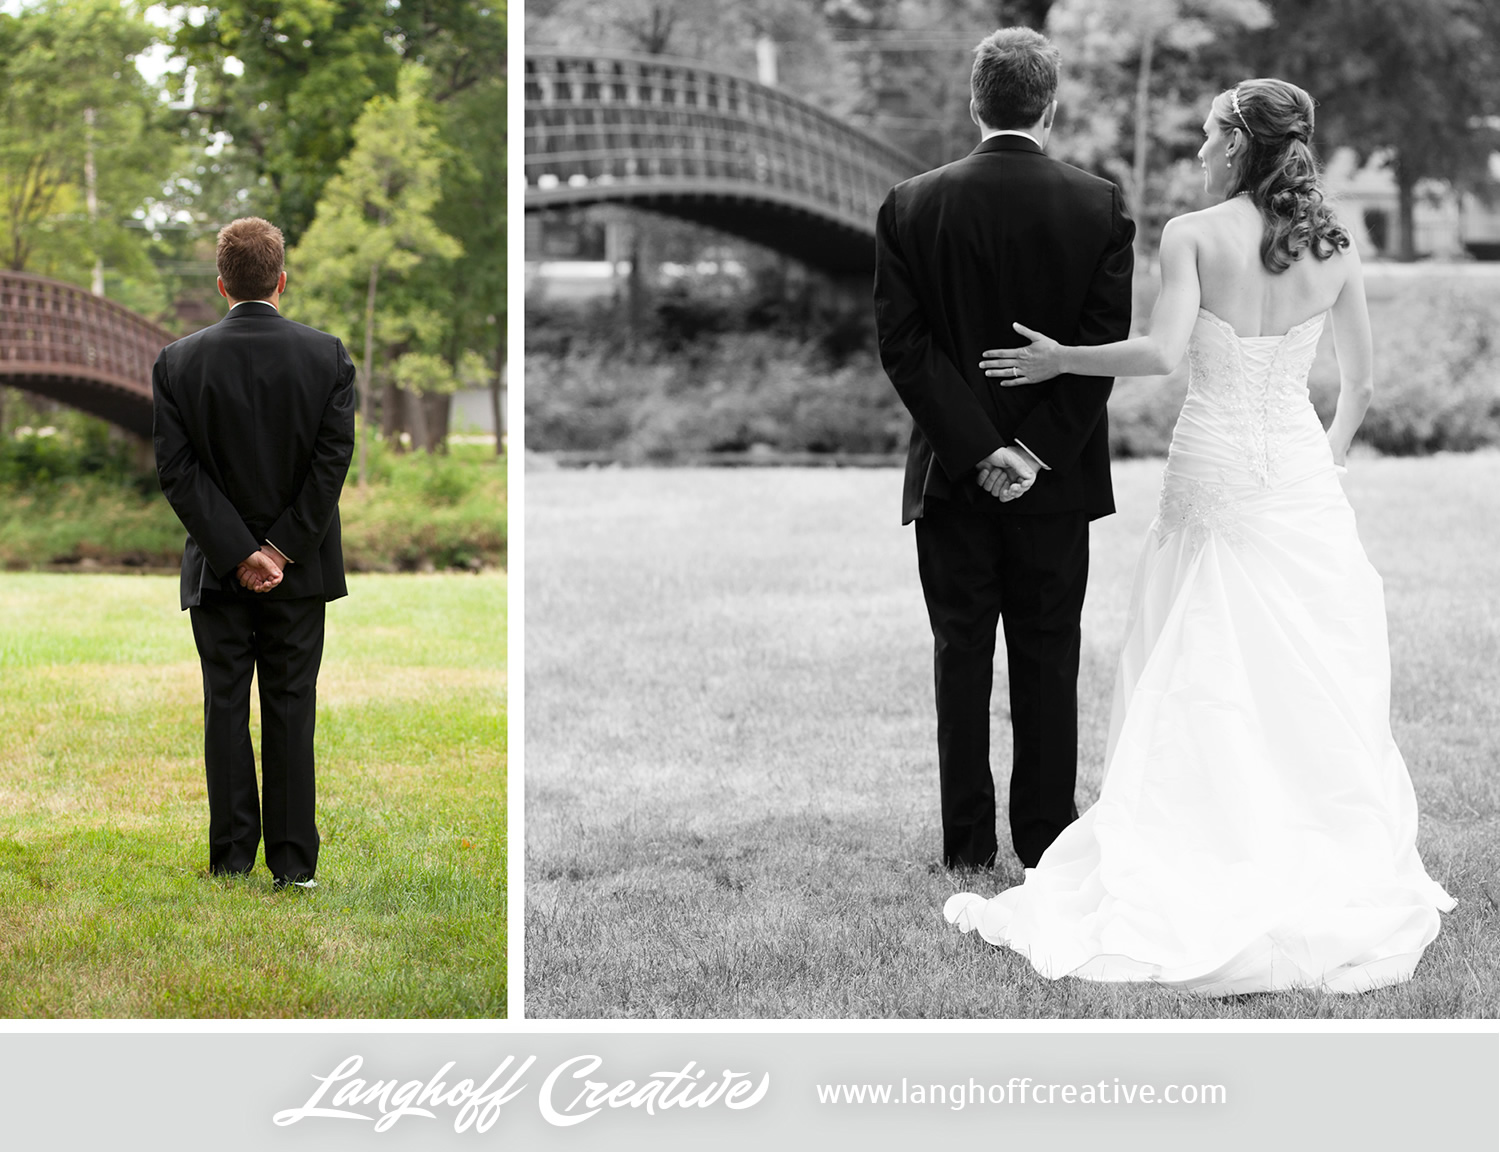 PlainfieldWedding-2013-LanghoffCreative-MattErin-6-photo.jpg